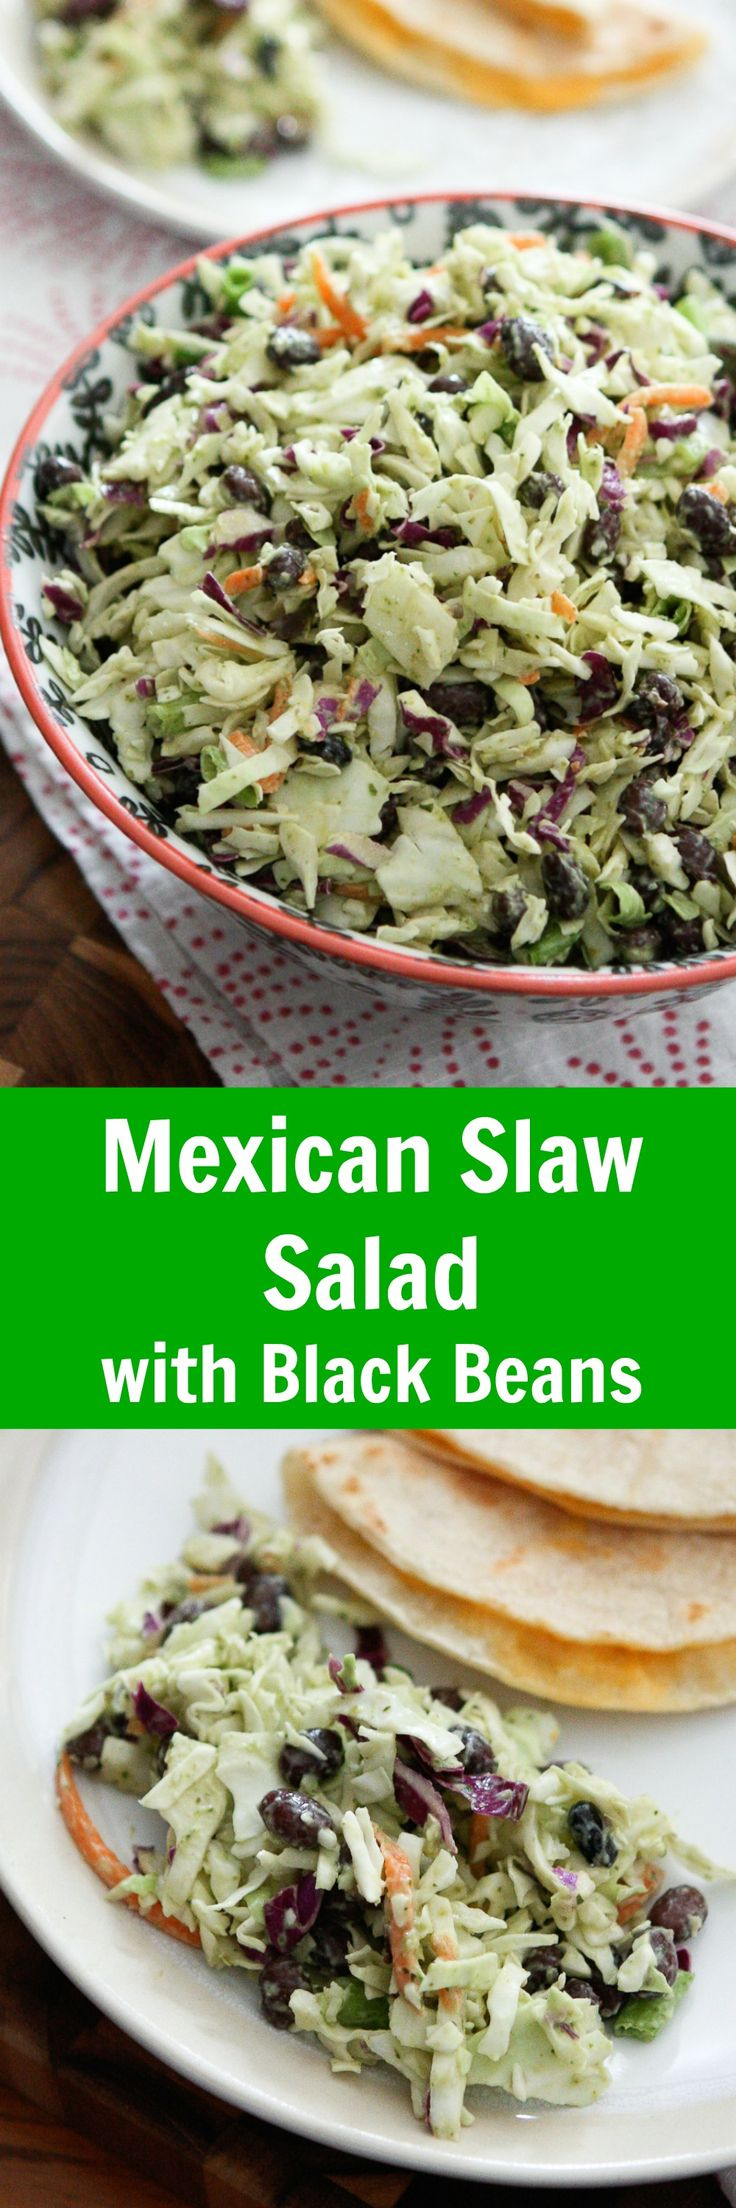 This Mexican Slaw Salad with Black Beans is the perfect addition to any dinner, potluck or fiesta!! It's tangy Avocado Lime Dressing is OUT OF THIS WORLD! We love it served with simple cheese quesadillas or enchiladas.